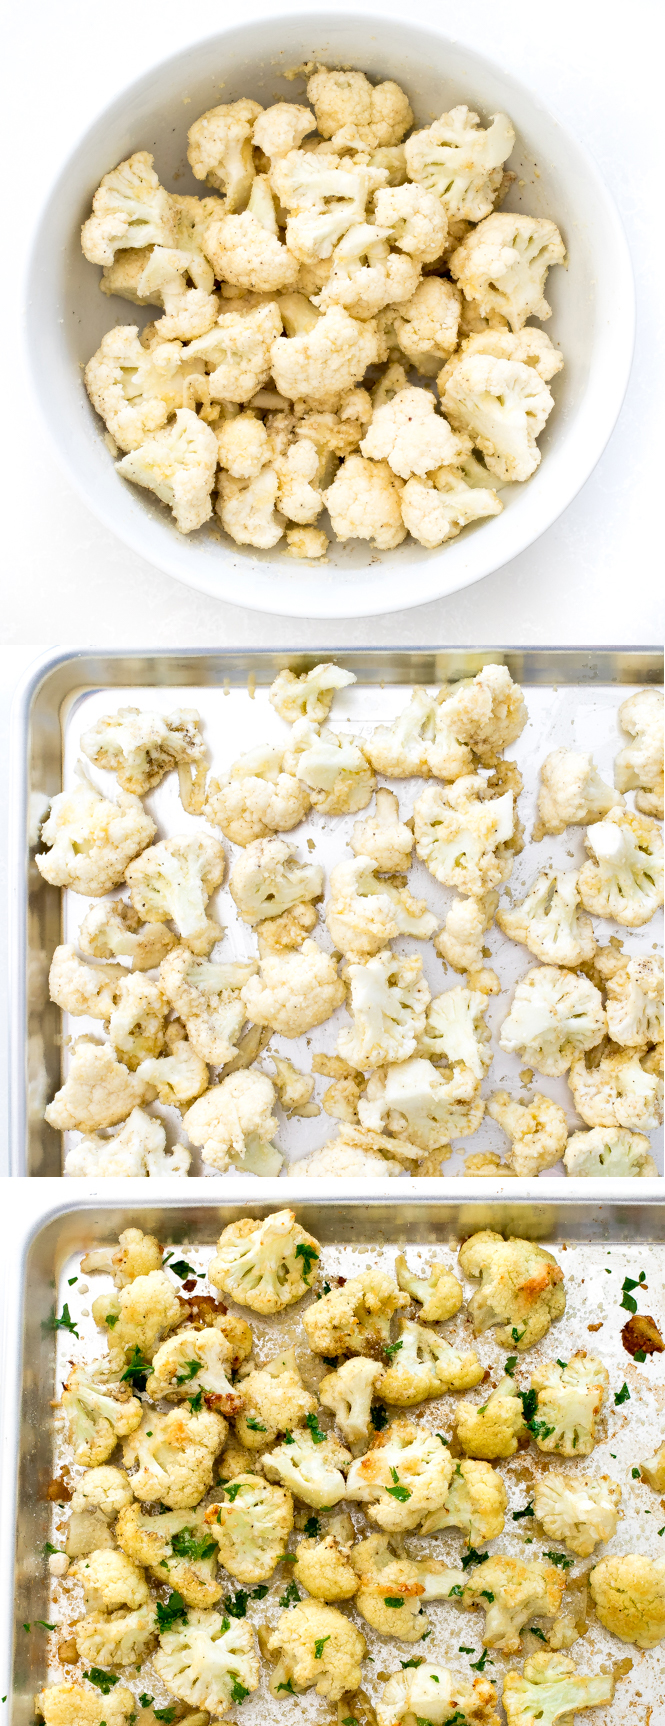 Step by step pictures of cauliflower cooked in the oven on a sheet tray | chefsavvy.com